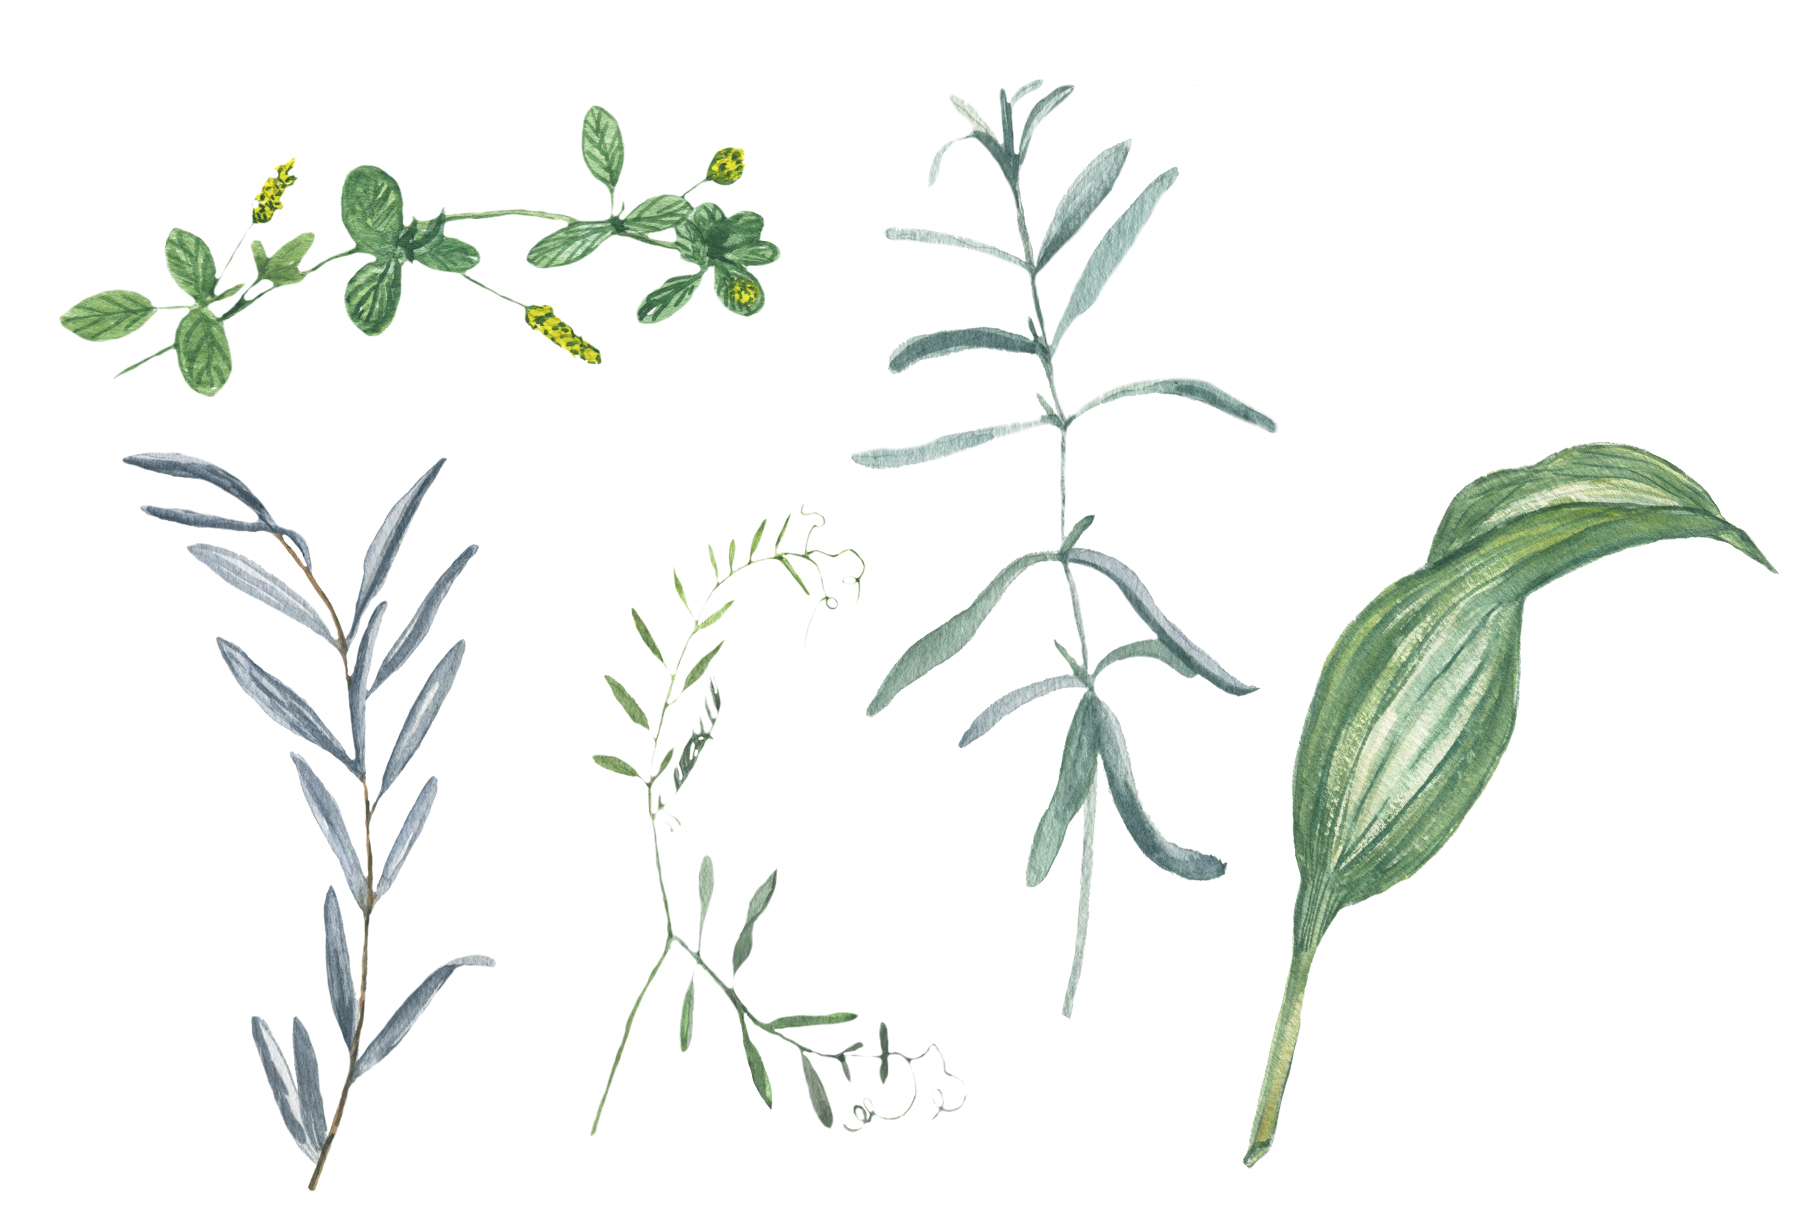 Watercolor grass and wildflowers example image 4